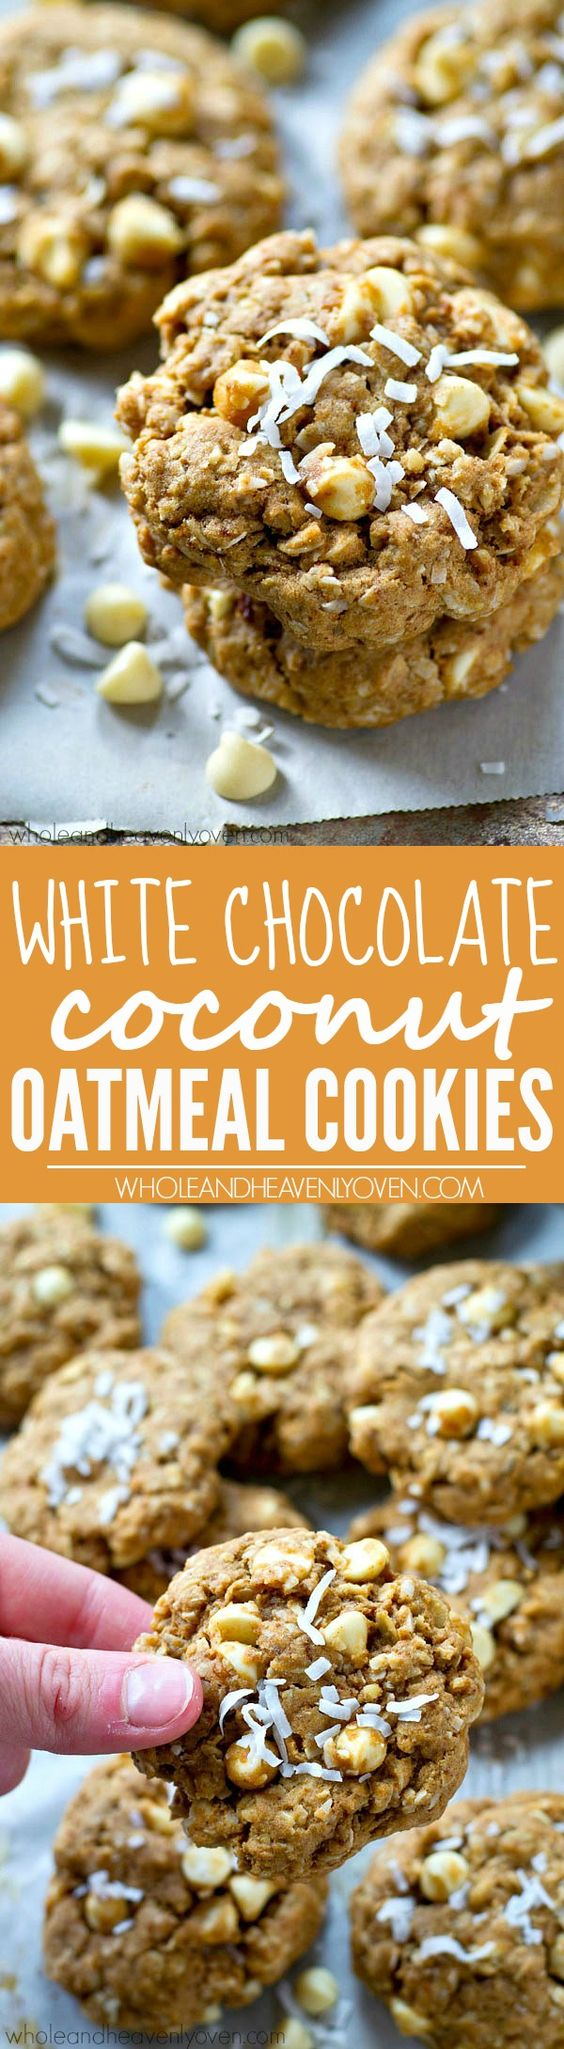 ... white chocolate coconut oatmeal salem s lot dreams cookies chocolate